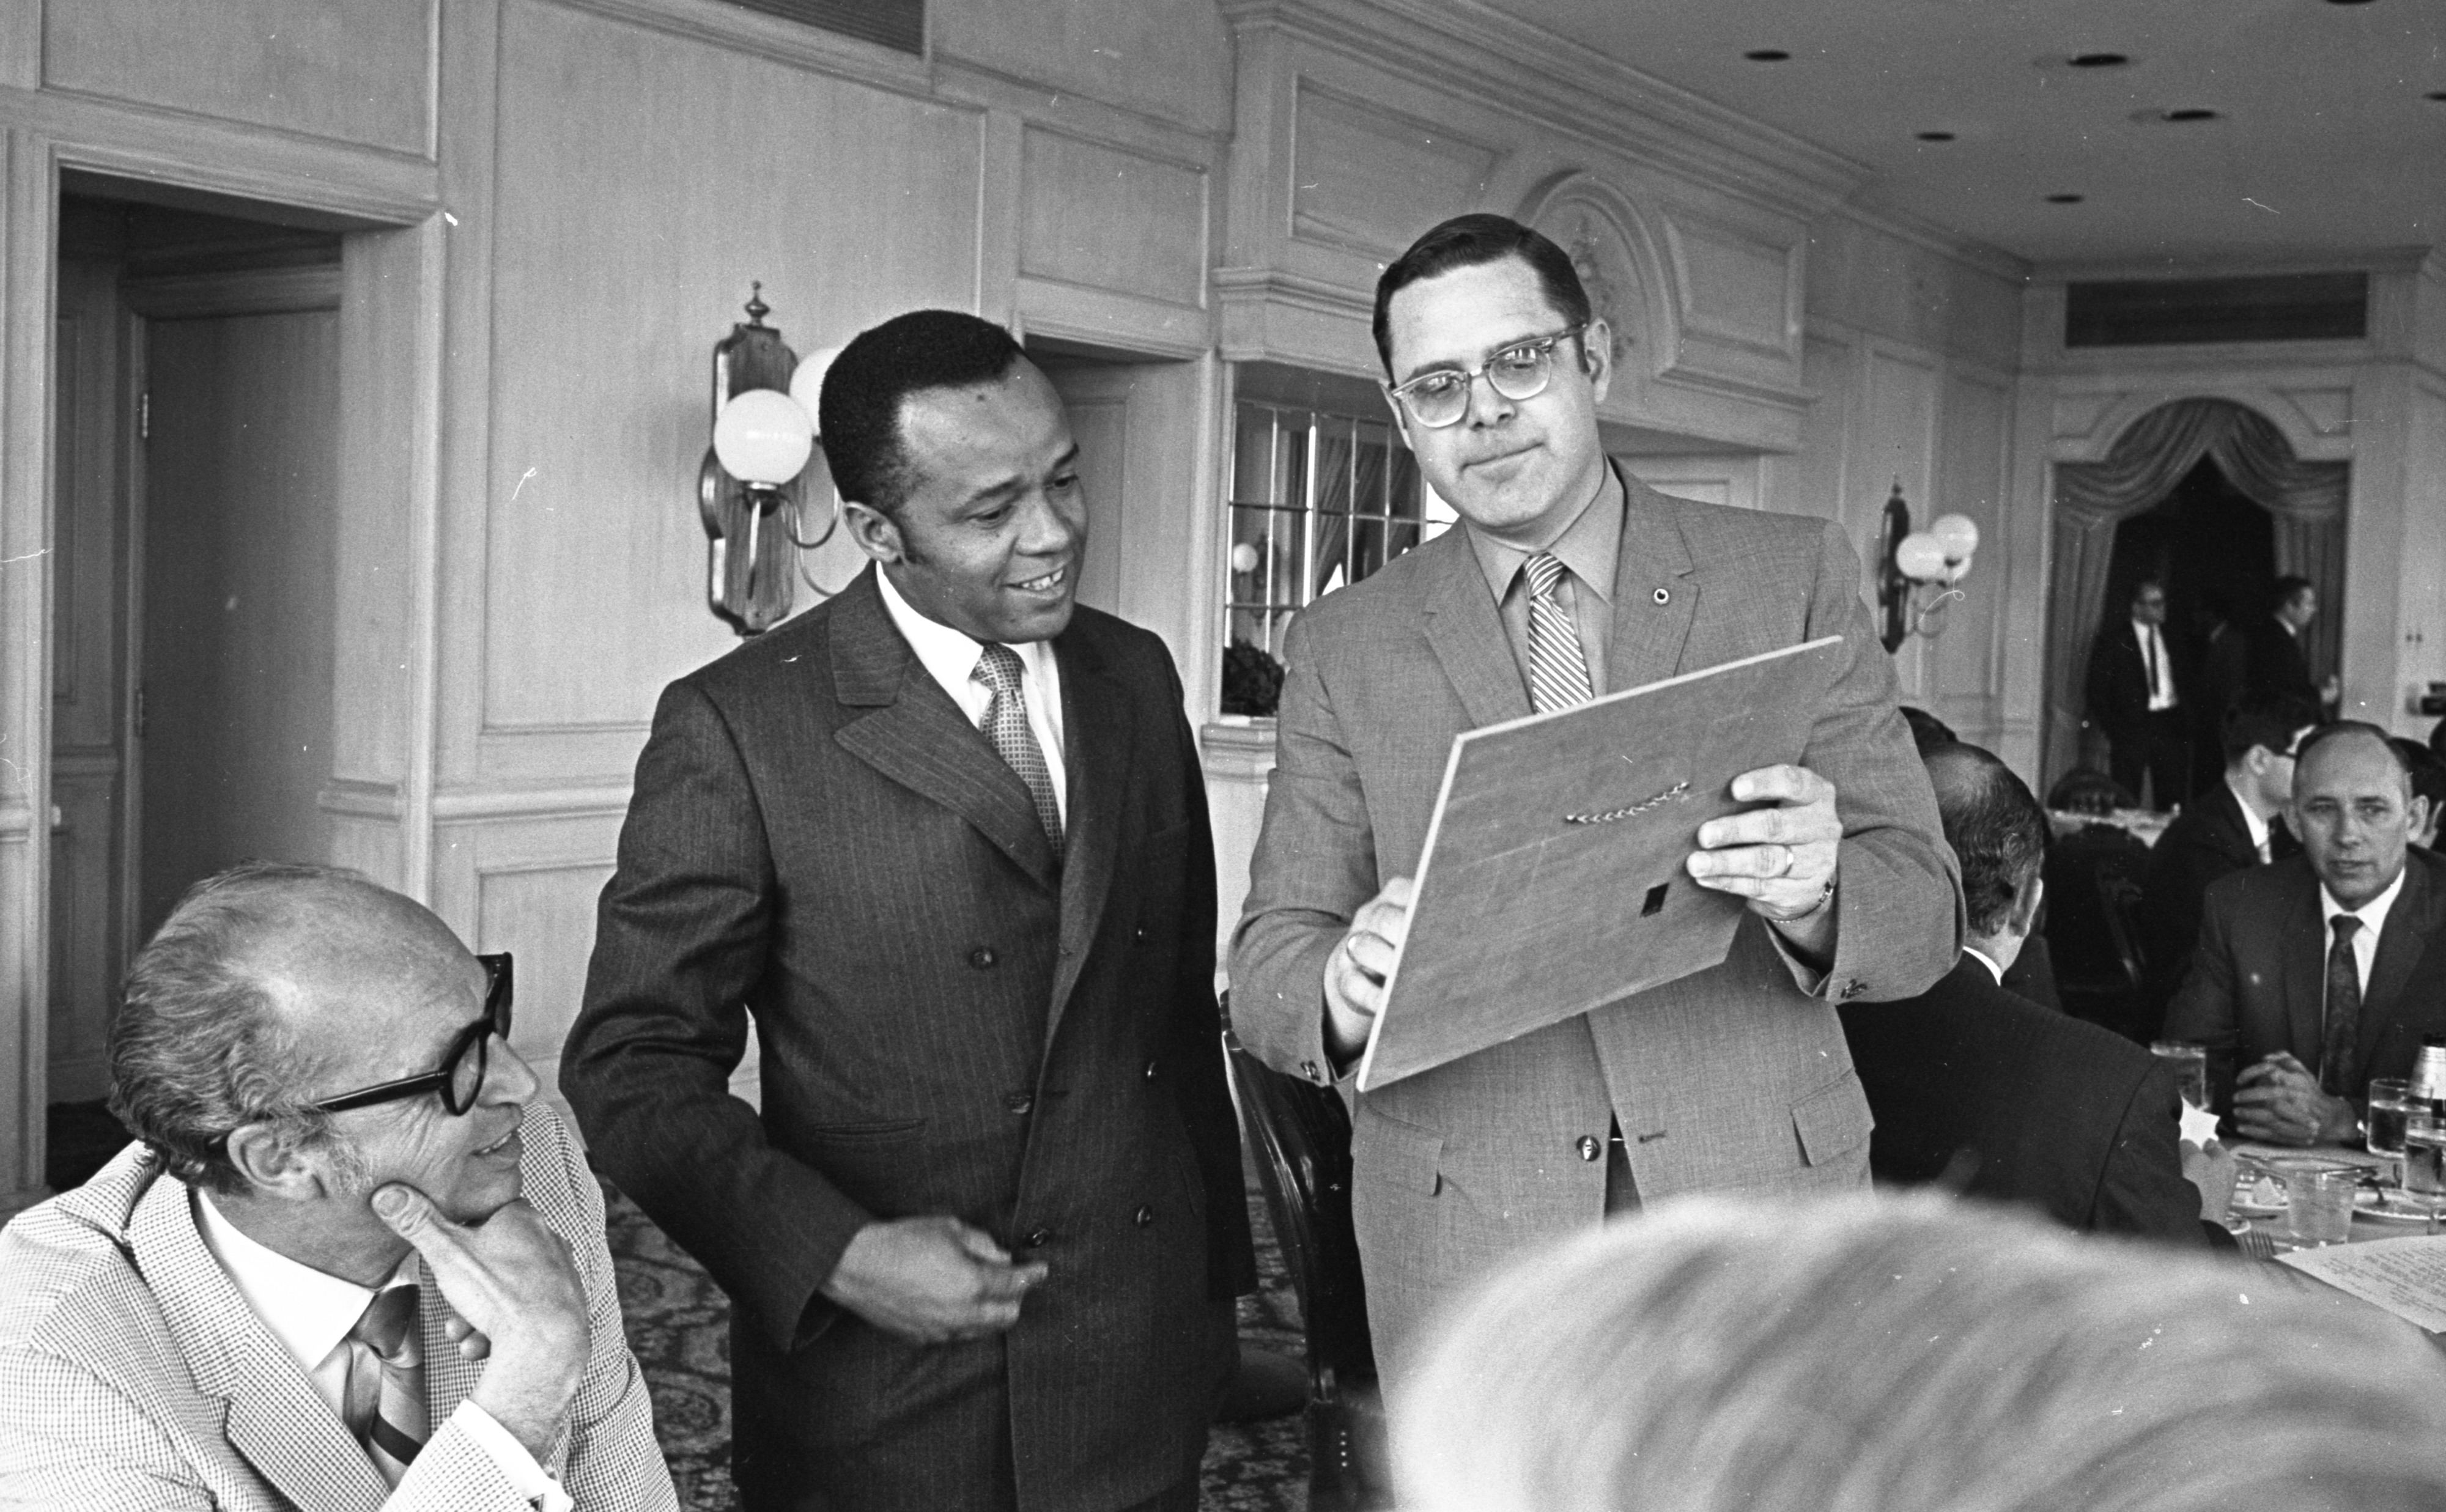 David Byrd Receives The Ann Arbor Board Of Realtors Directors' Citation Of Merit, May 1970 image